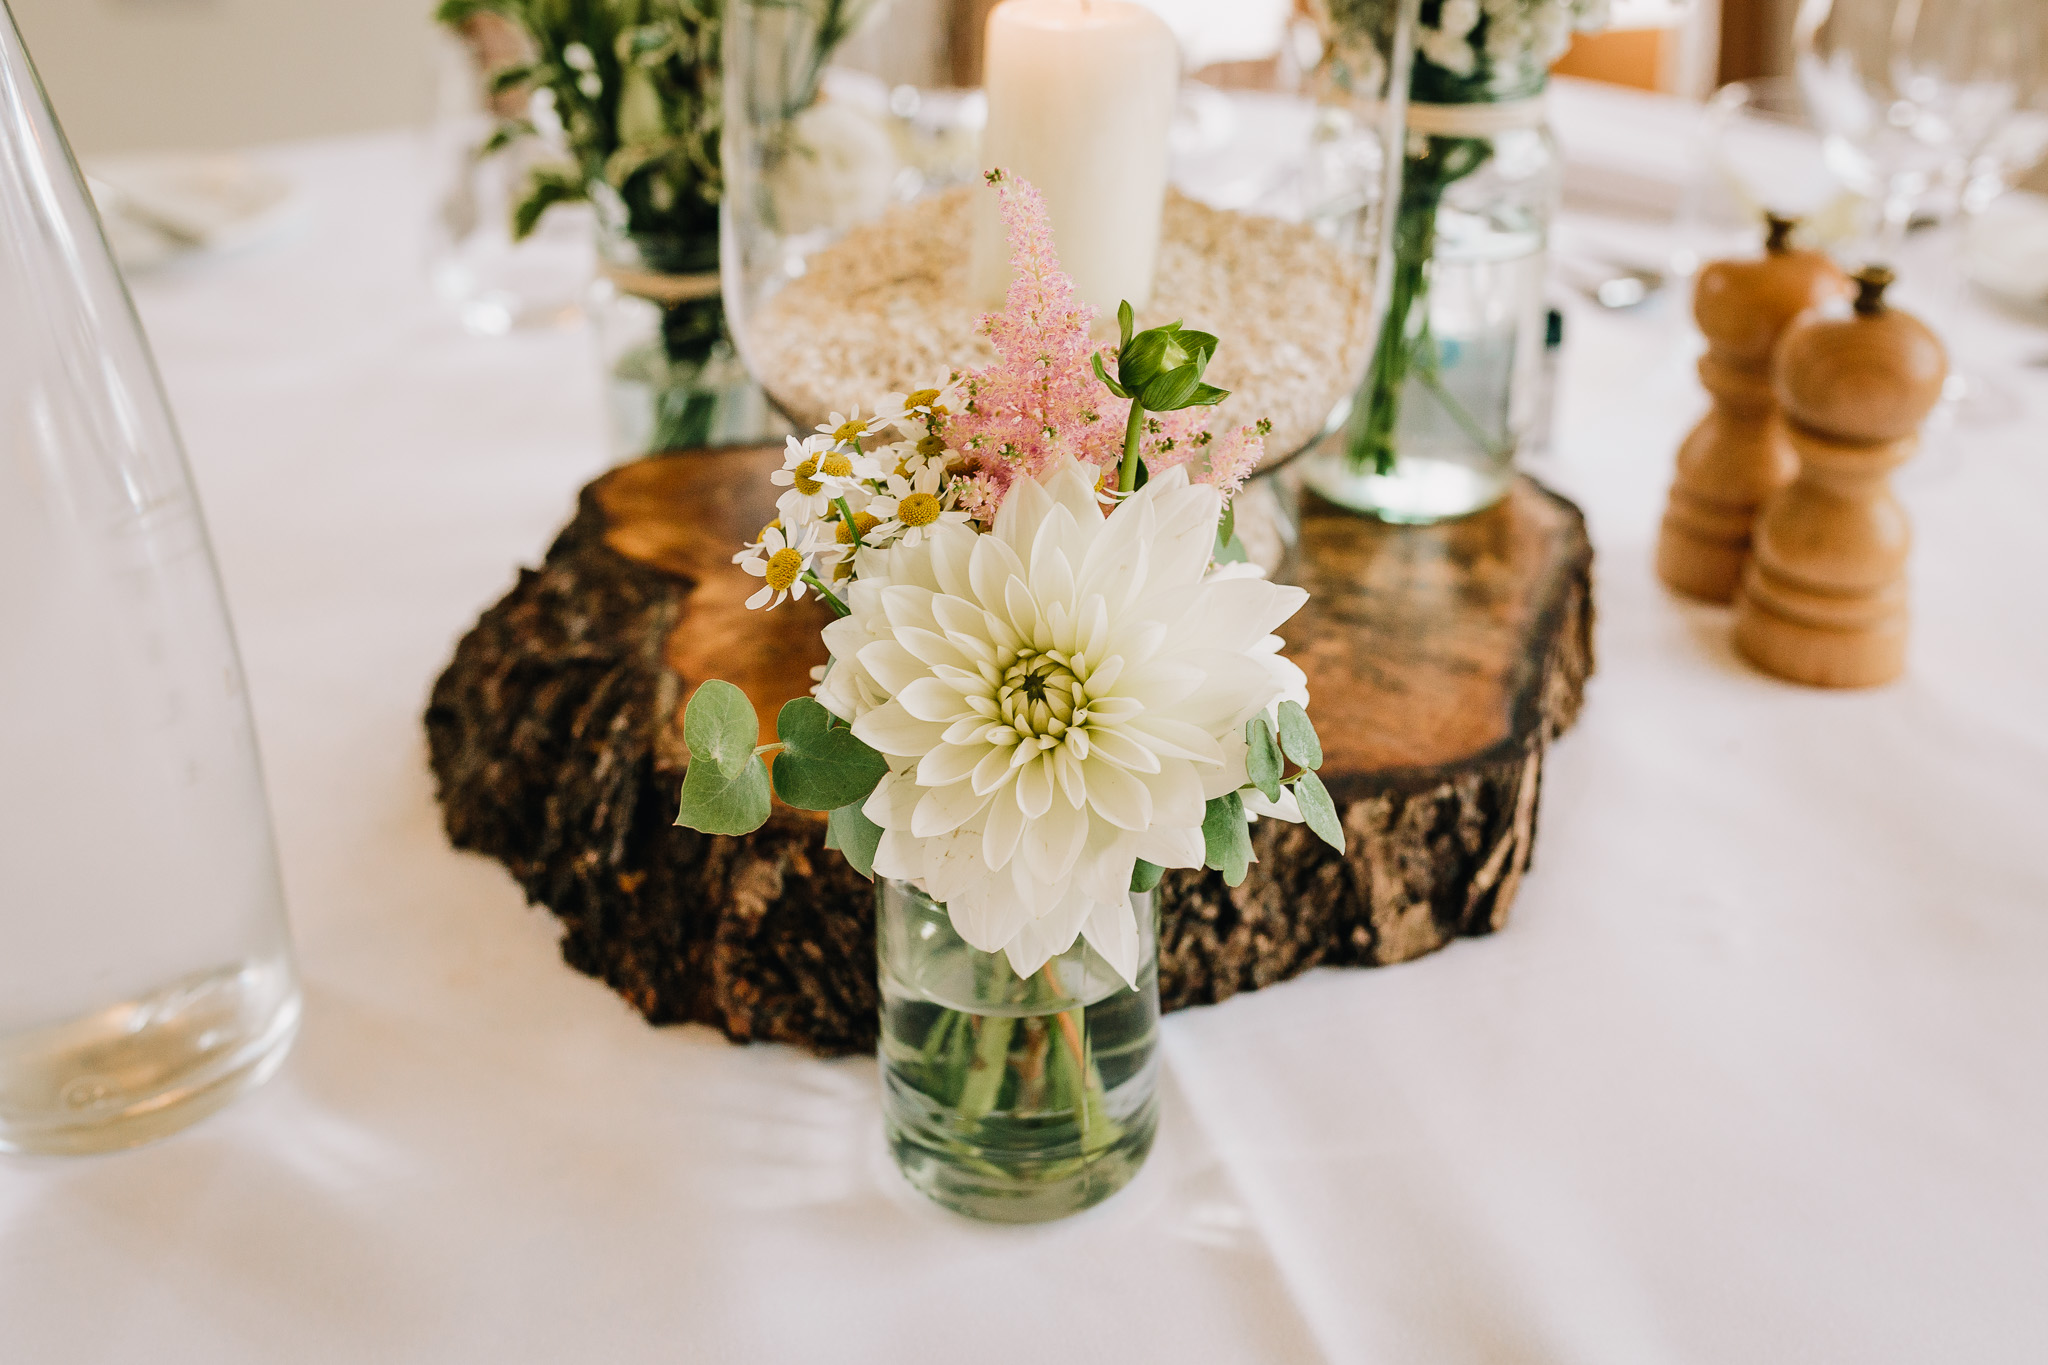 RUSTIC WEDDING FLOWERS ON TABLE AT RECEPTION